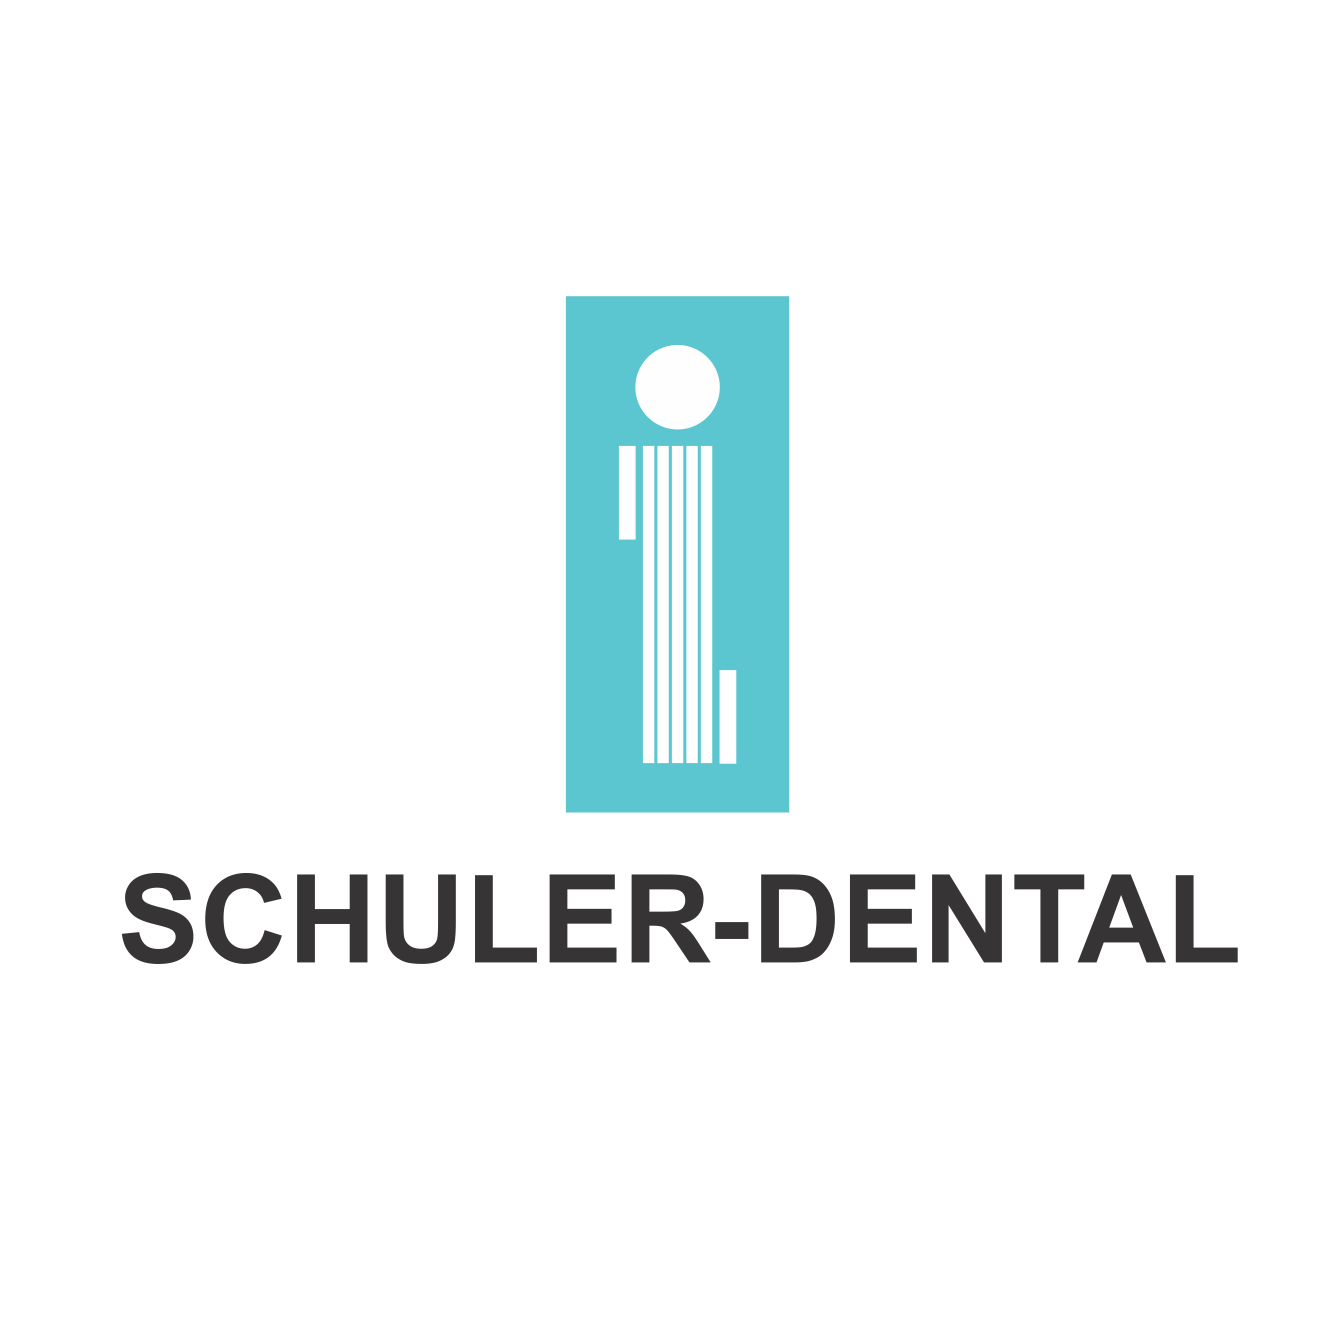 schuler-dental.png